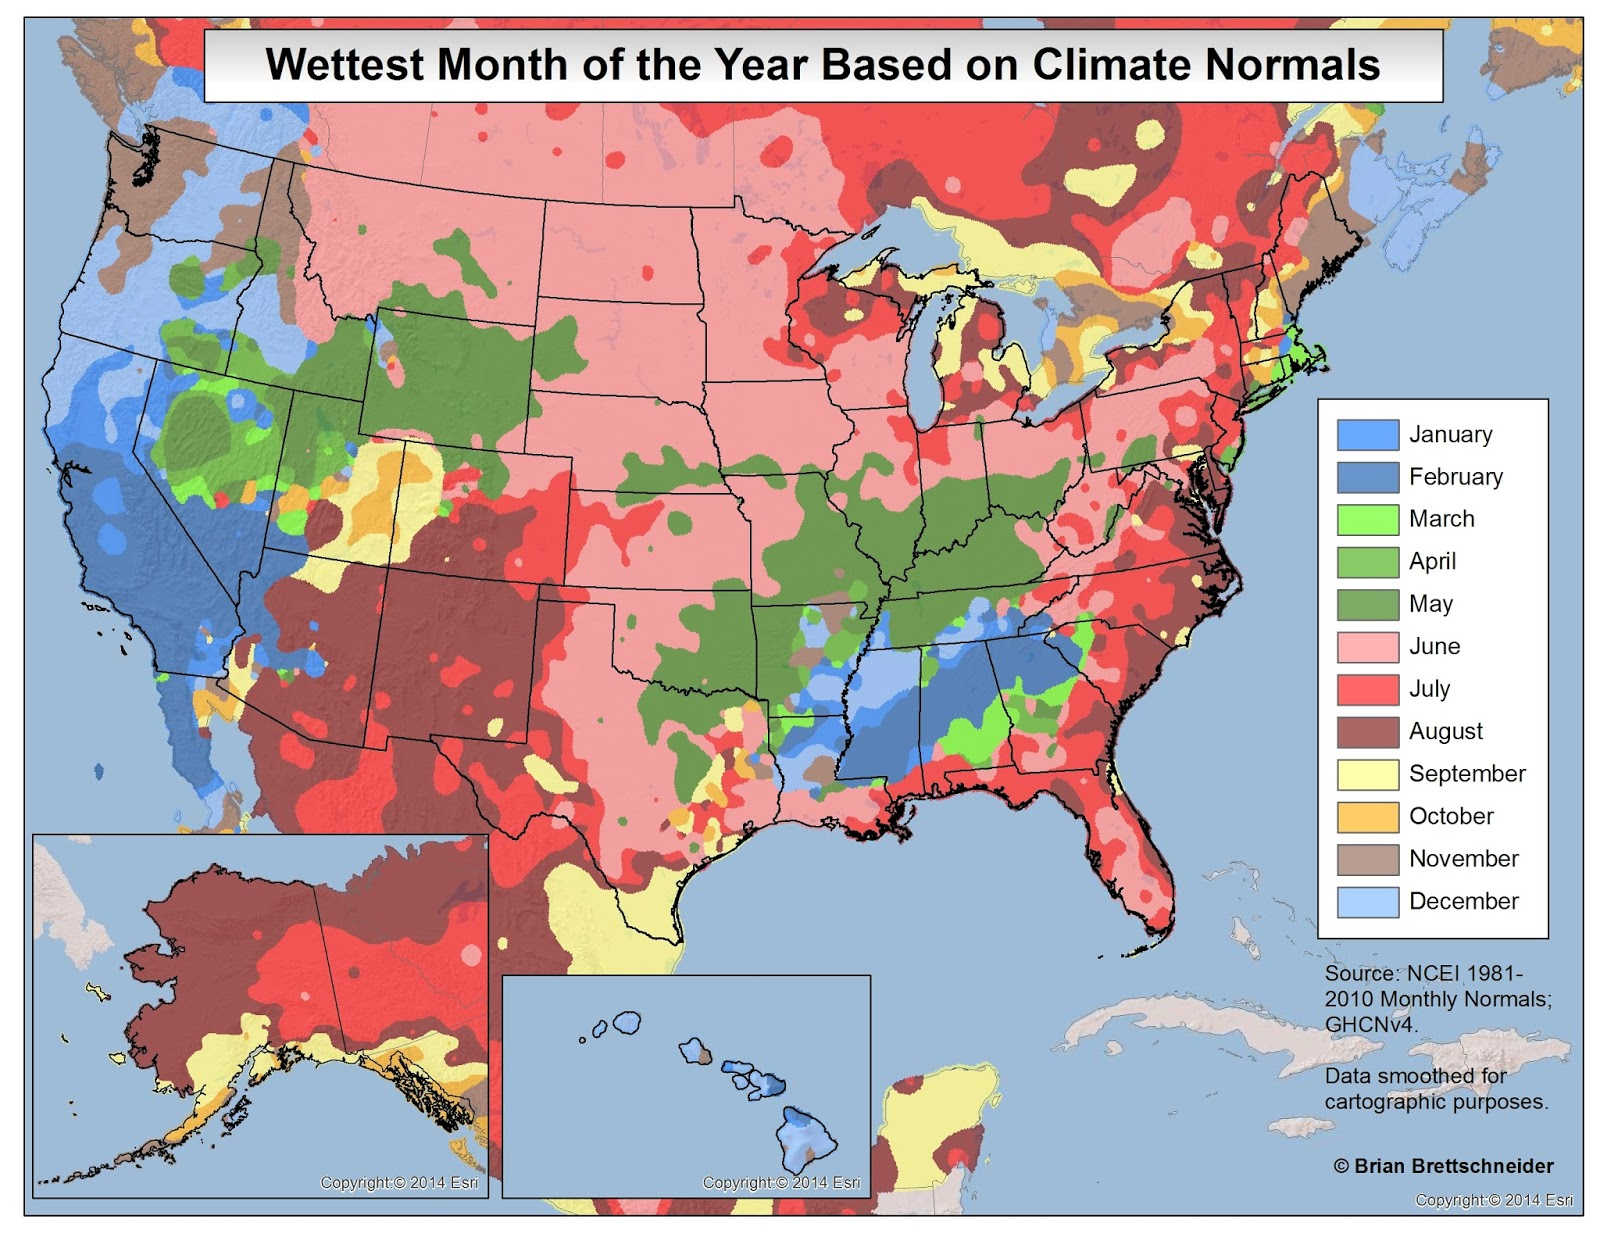 Wettest month of the year based on climate normals